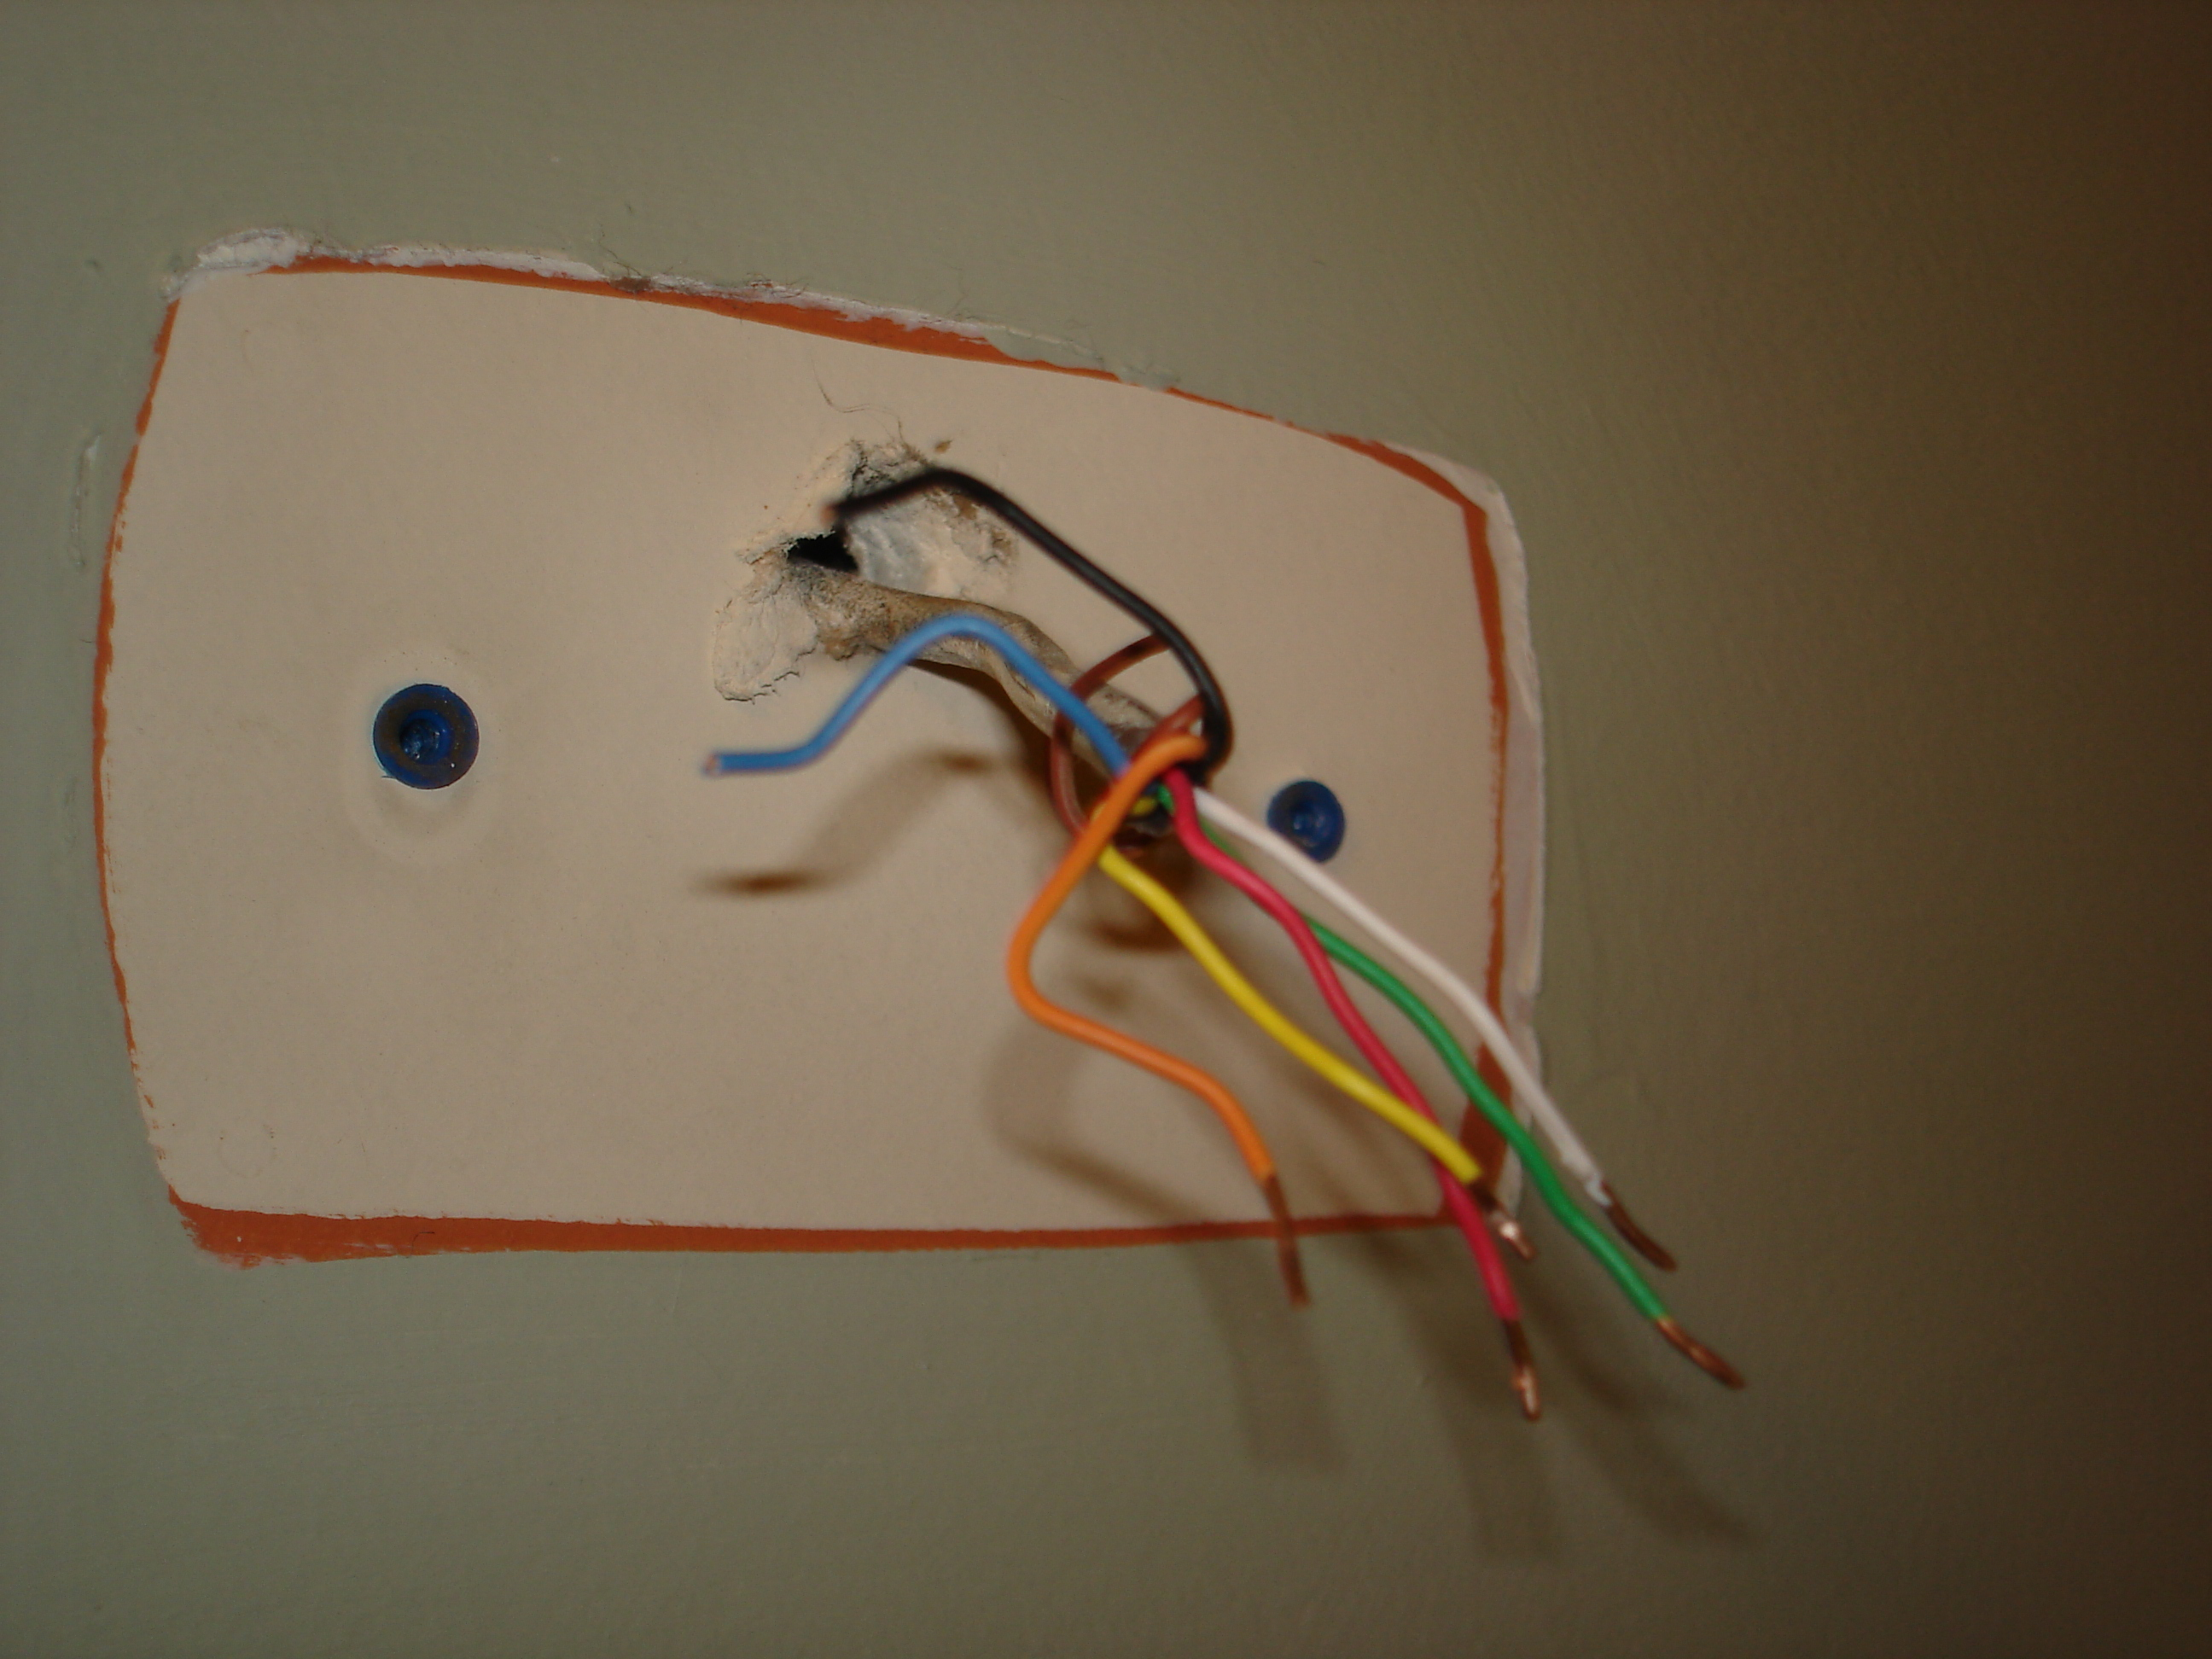 Take Note Of The Wiring Its Likely Color Coded But Jot Down The